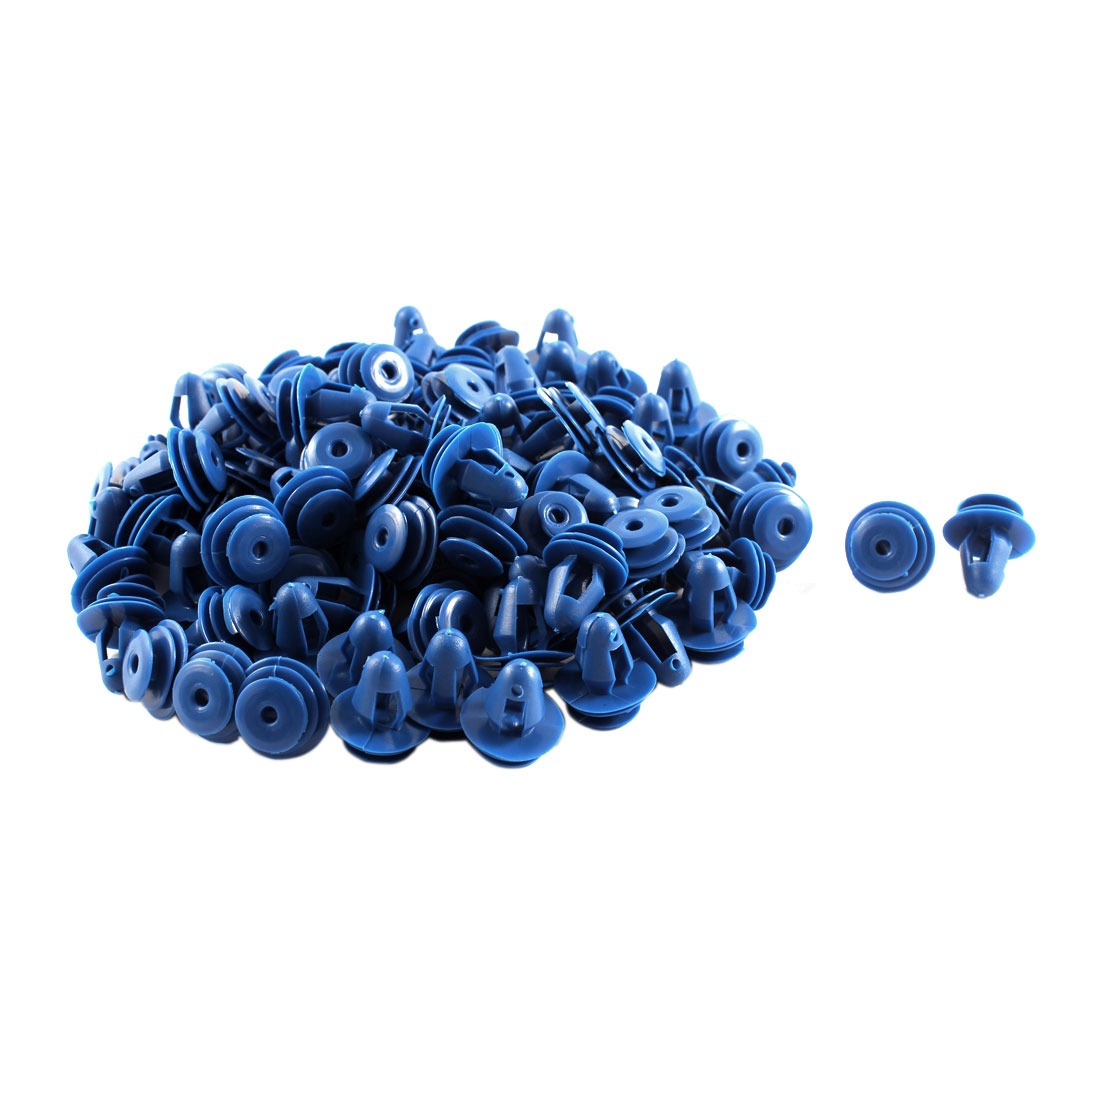 Unique Bargains Car Plastic Push Type Fasteners Clip Rivet Bumper 10mm Hole Dia 100pcs Blue